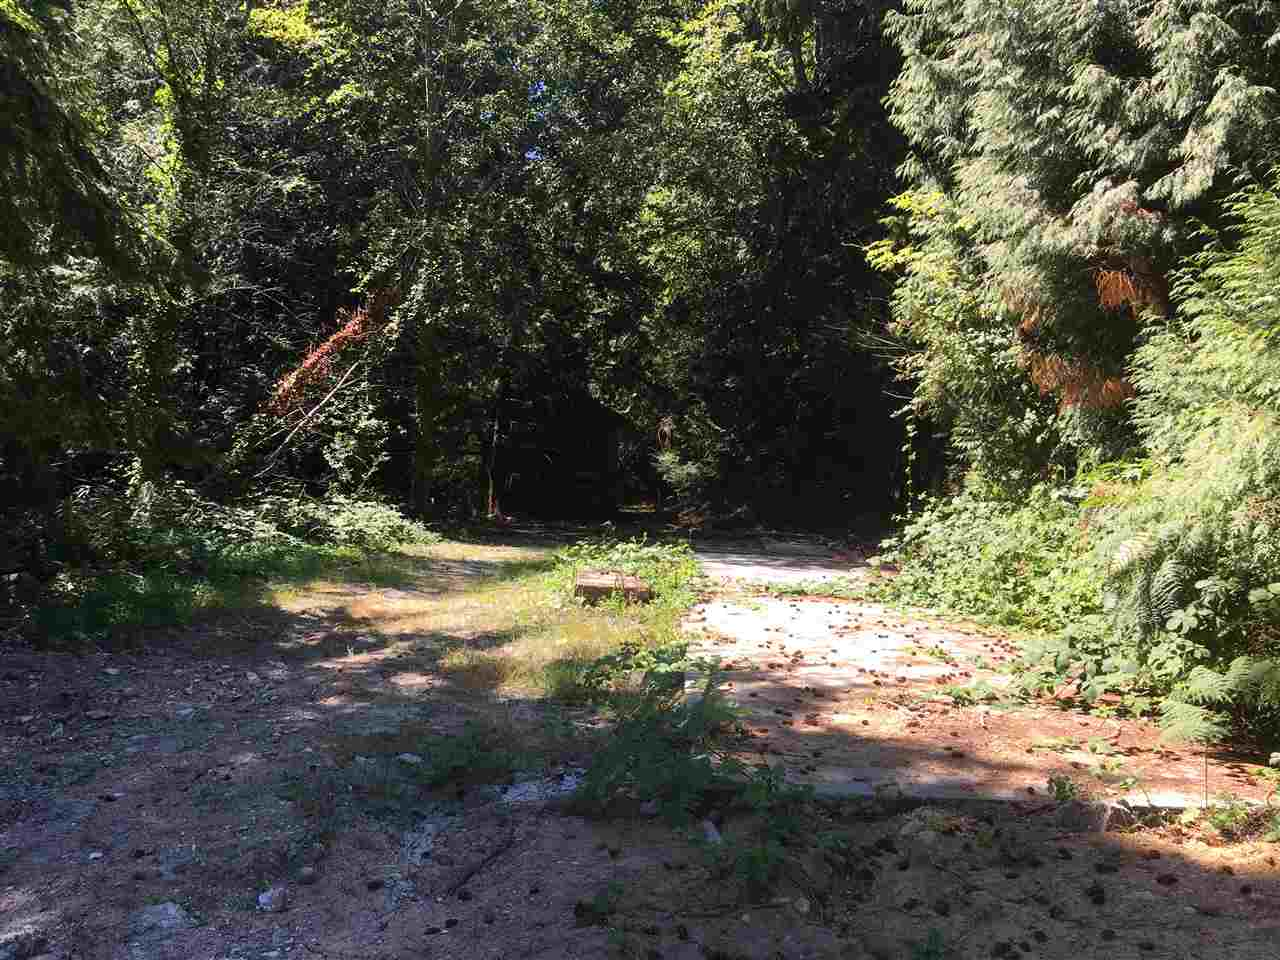 Close to the beach and very private this .68 acre lot is just waiting for your ideas! Flat building lot is zoned for a single home and 592 sq.ft. cottage. Septic system is in but would have to be inspected. Electricity, gas and water all at lot line. It's your time to live in Roberts Creek! Call listing agent for additional information.